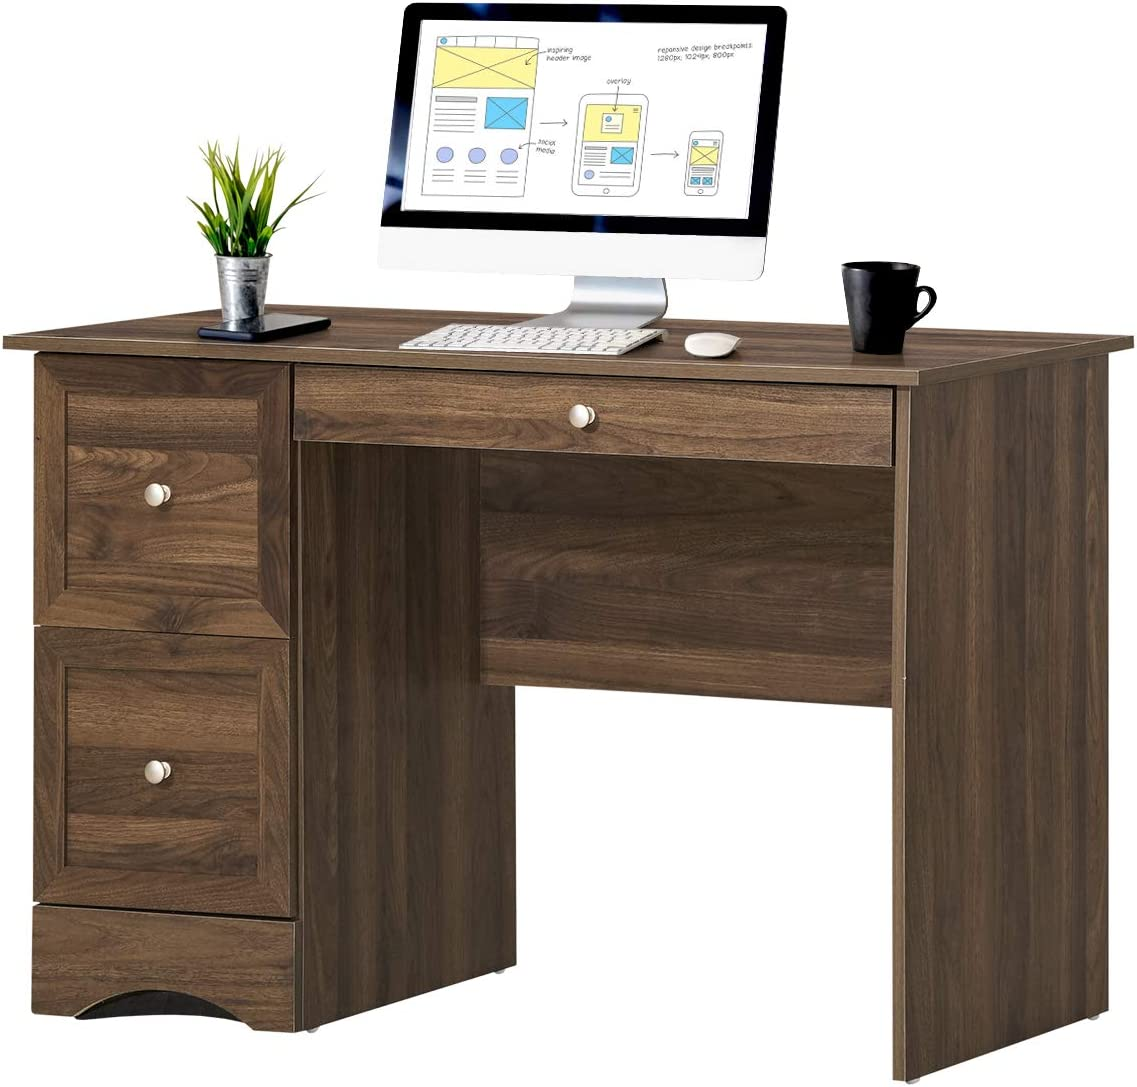 Tangkula Computer Desk with 3 Drawers, Wooden Home Office Desk PC Laptop Notebook Desk, Compact Study Desk Writing Desk, Computer Workstation Ideal for Home & Office